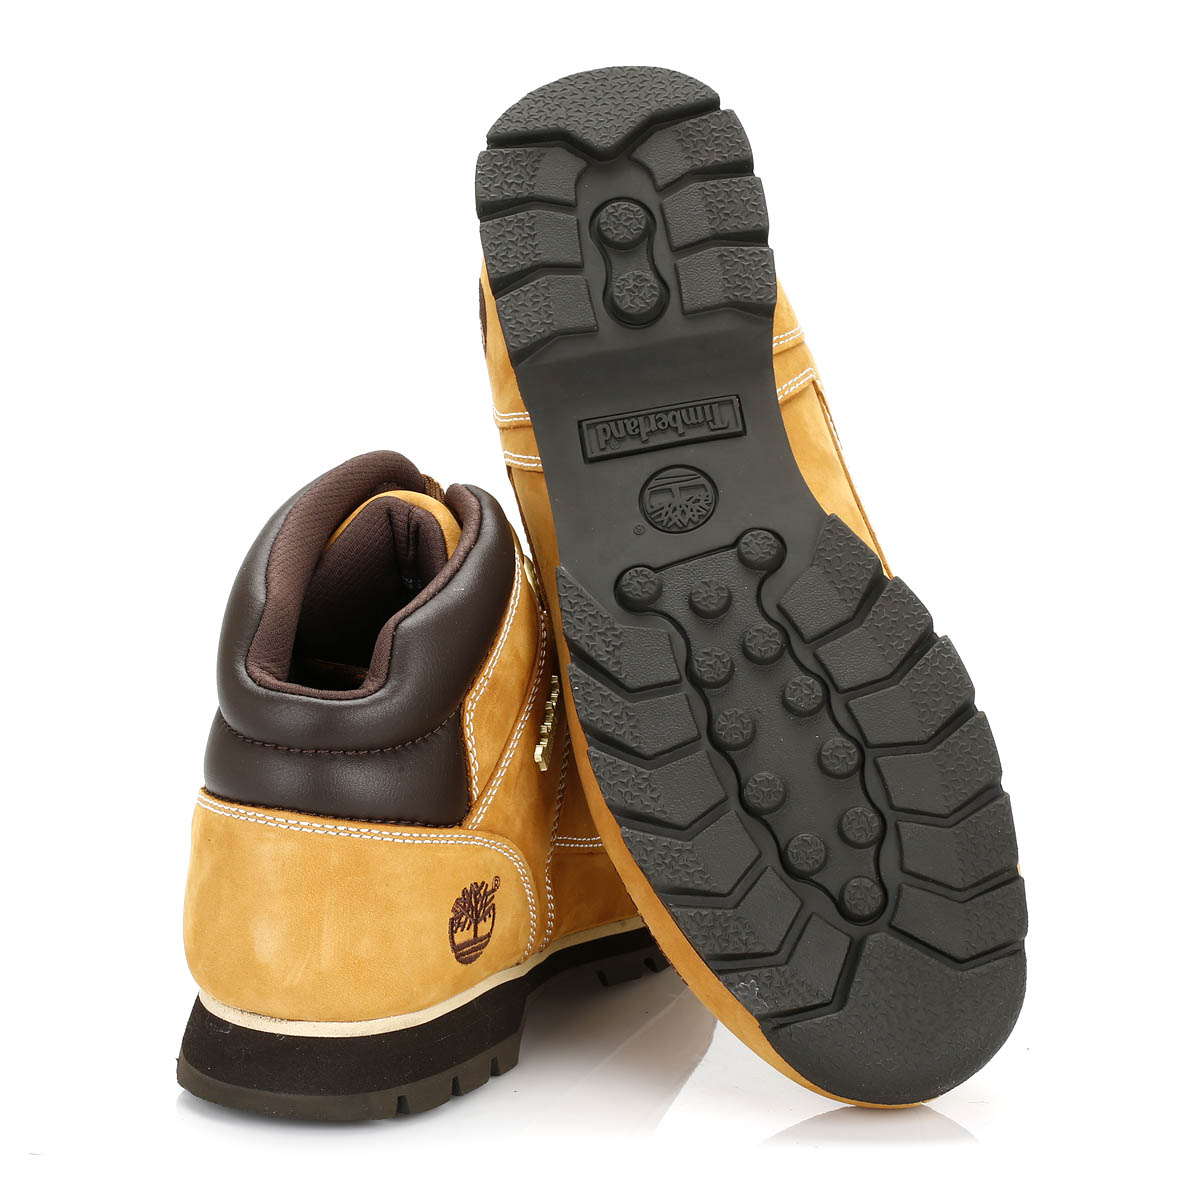 Timberland Mens Euro Sprint Hiker Boots Black Or Wheat